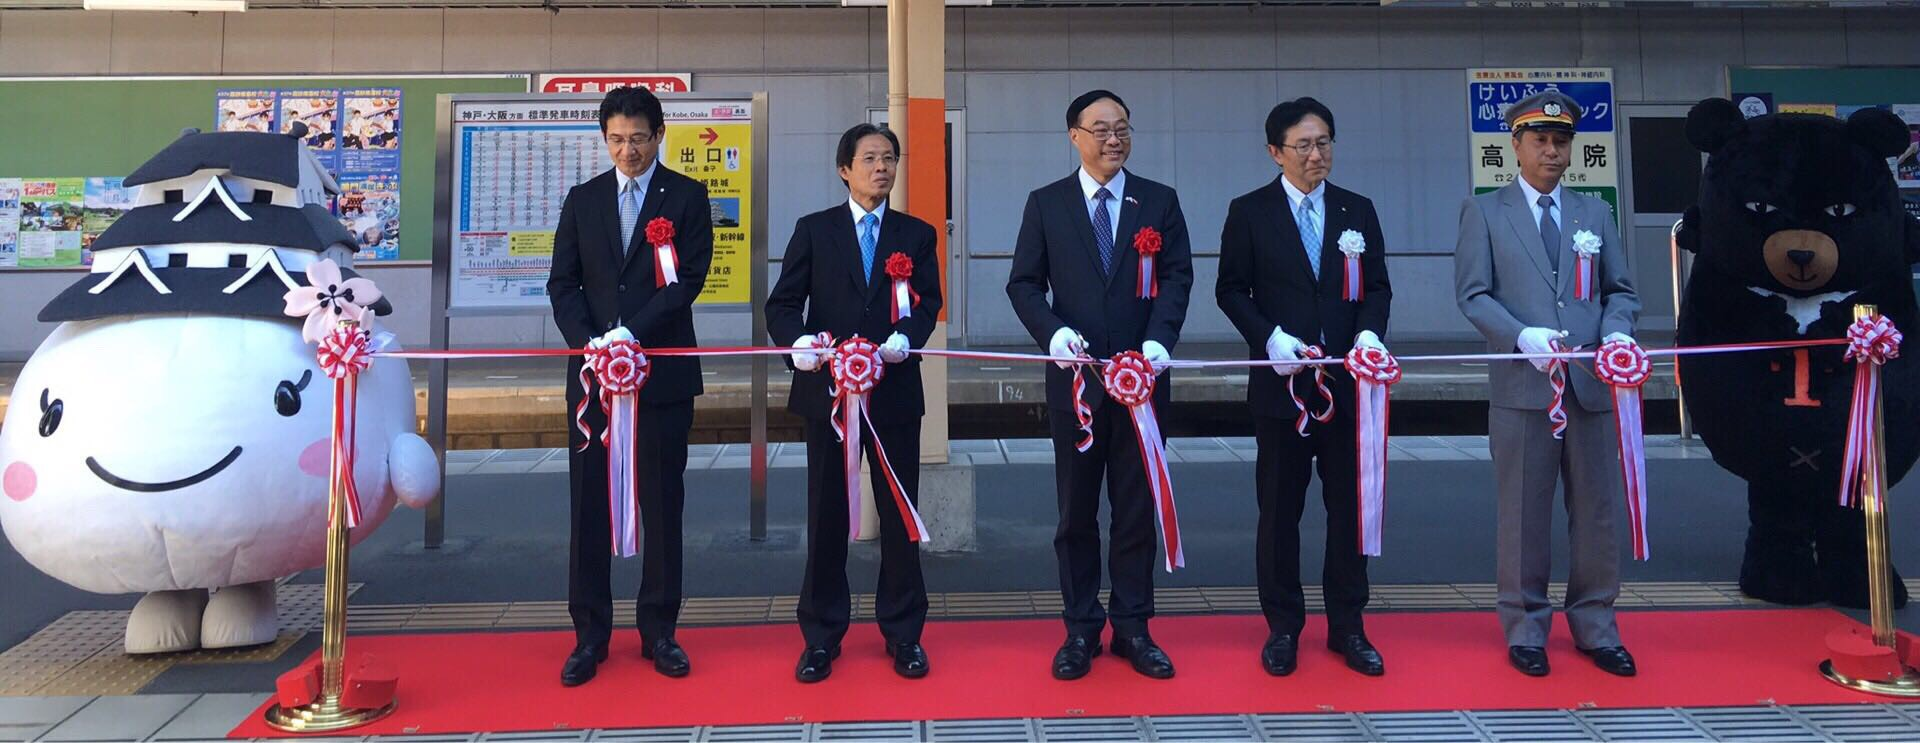 The director-general of the Tourism Bureau Chou, Yung-Hui attended the opening ceremony in Kansai.